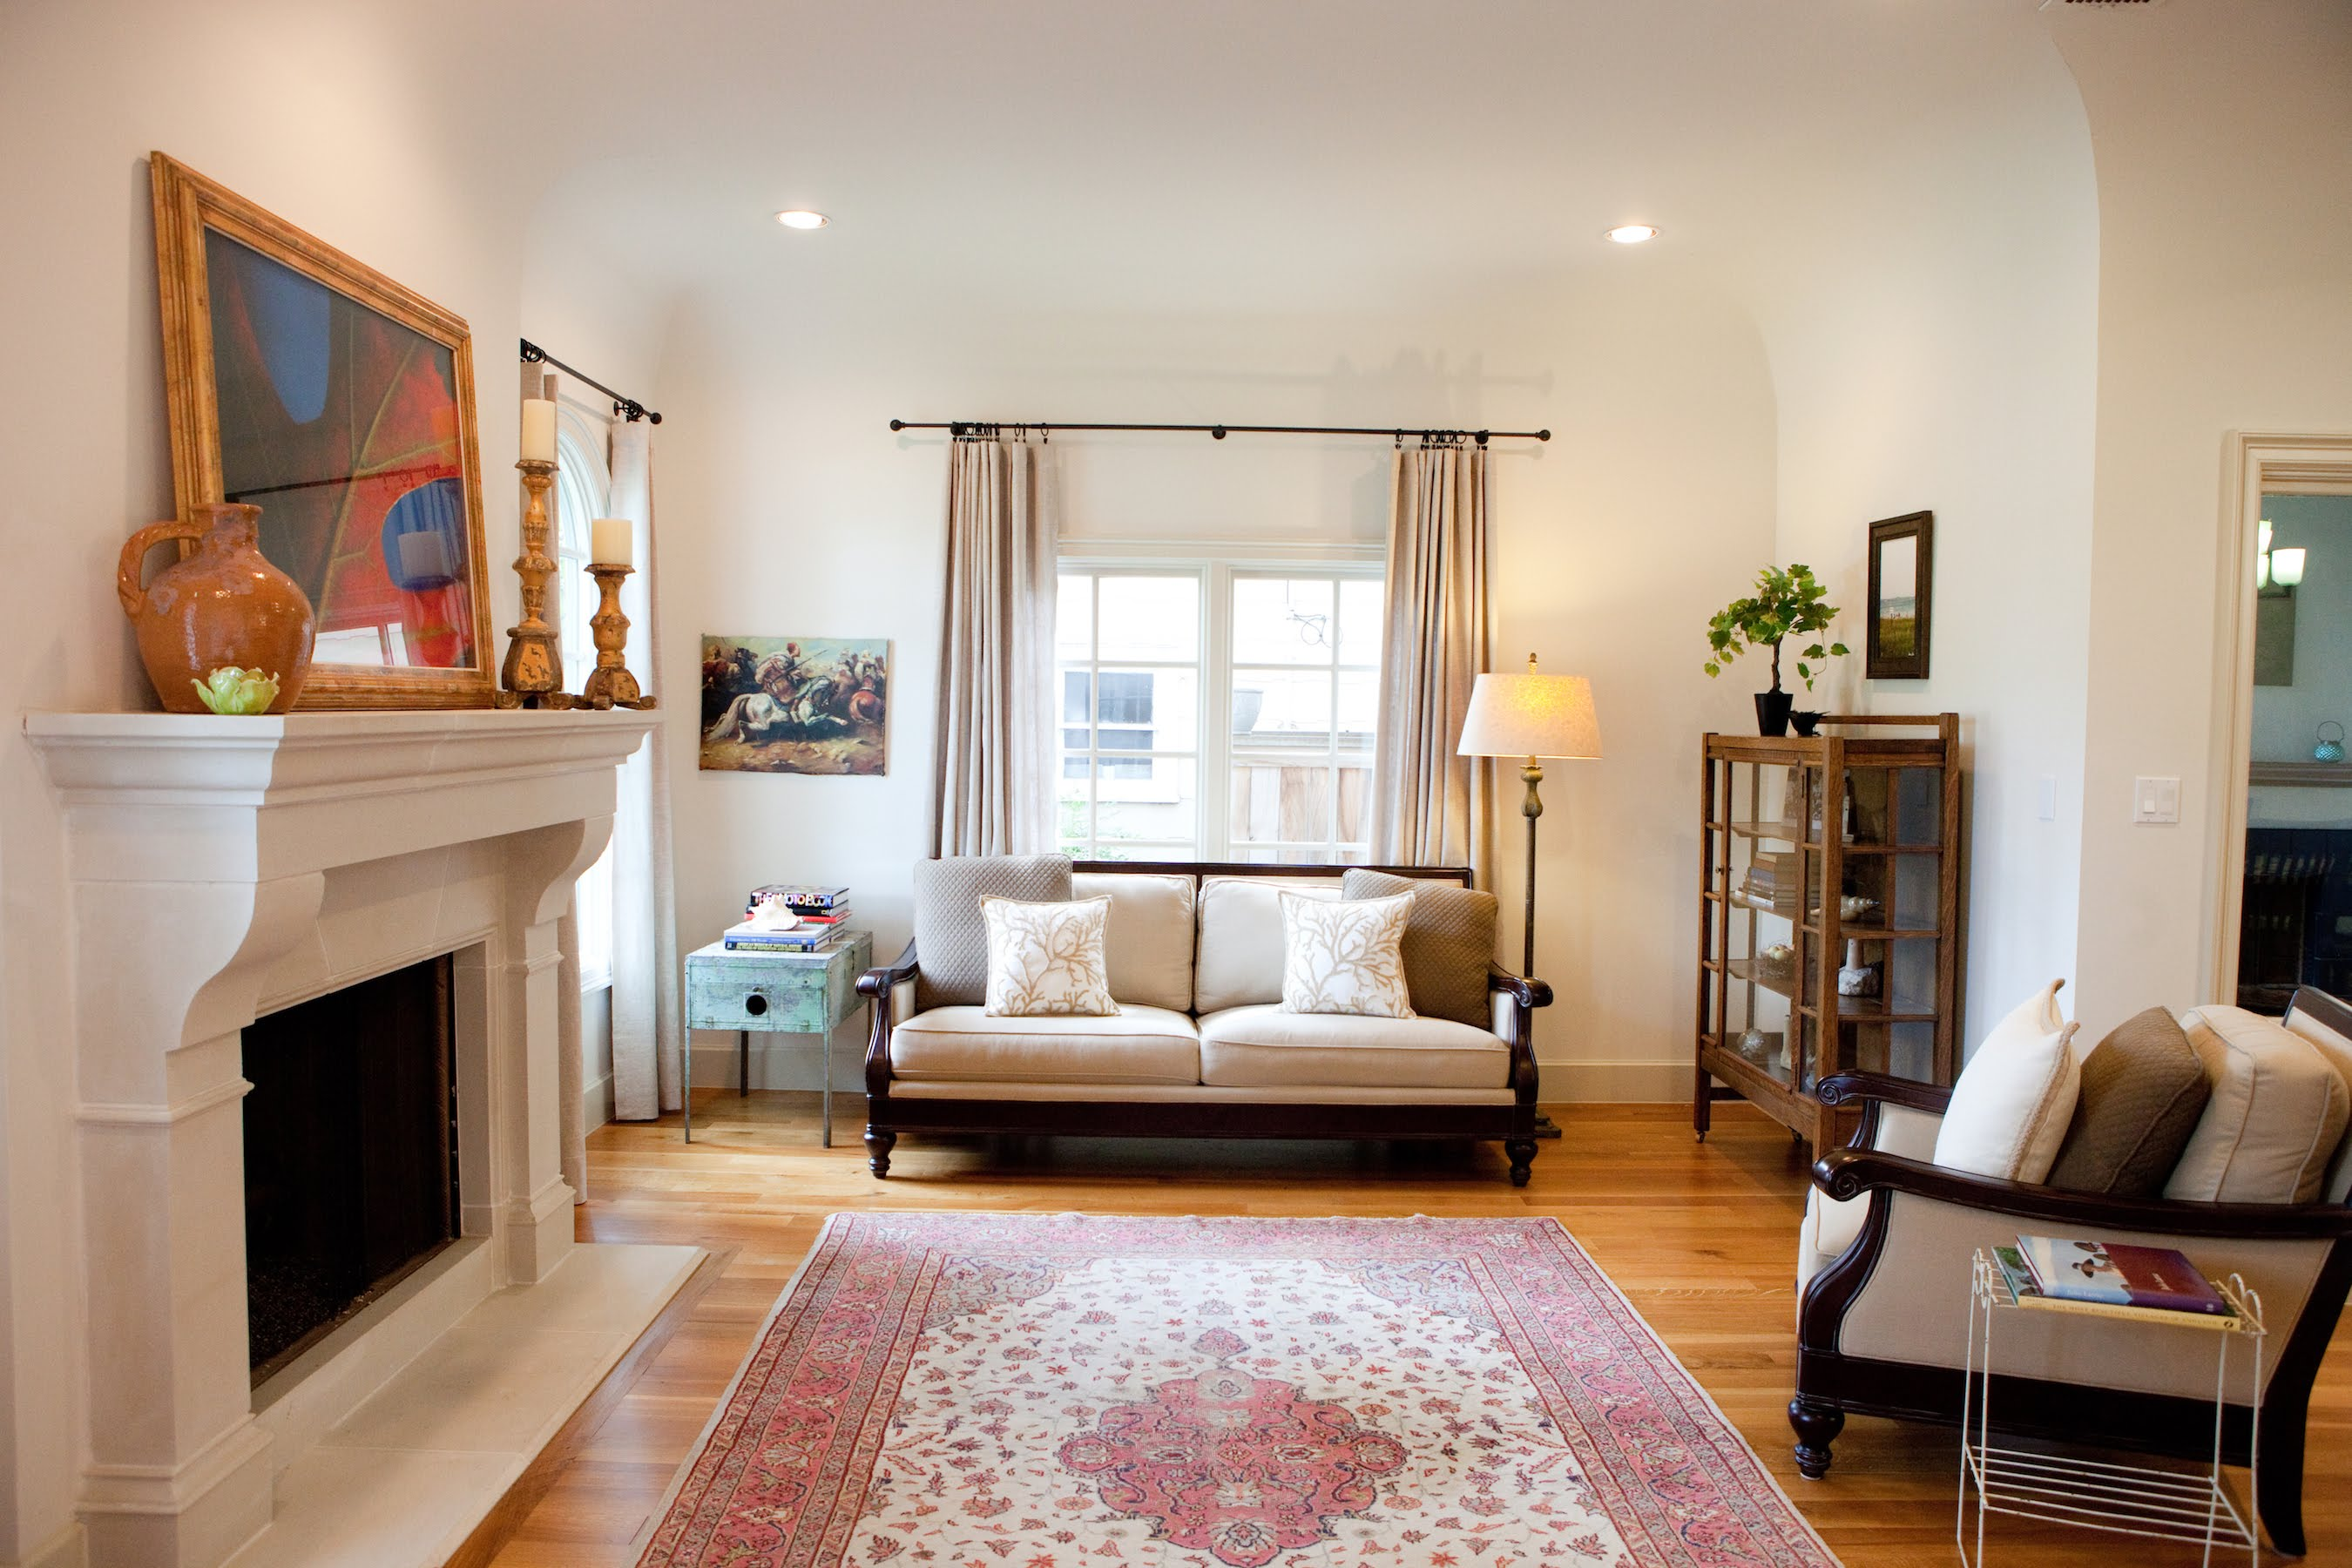 Living Room Design (Texas Homes): living room with coved ceilings and cast stone fireplace